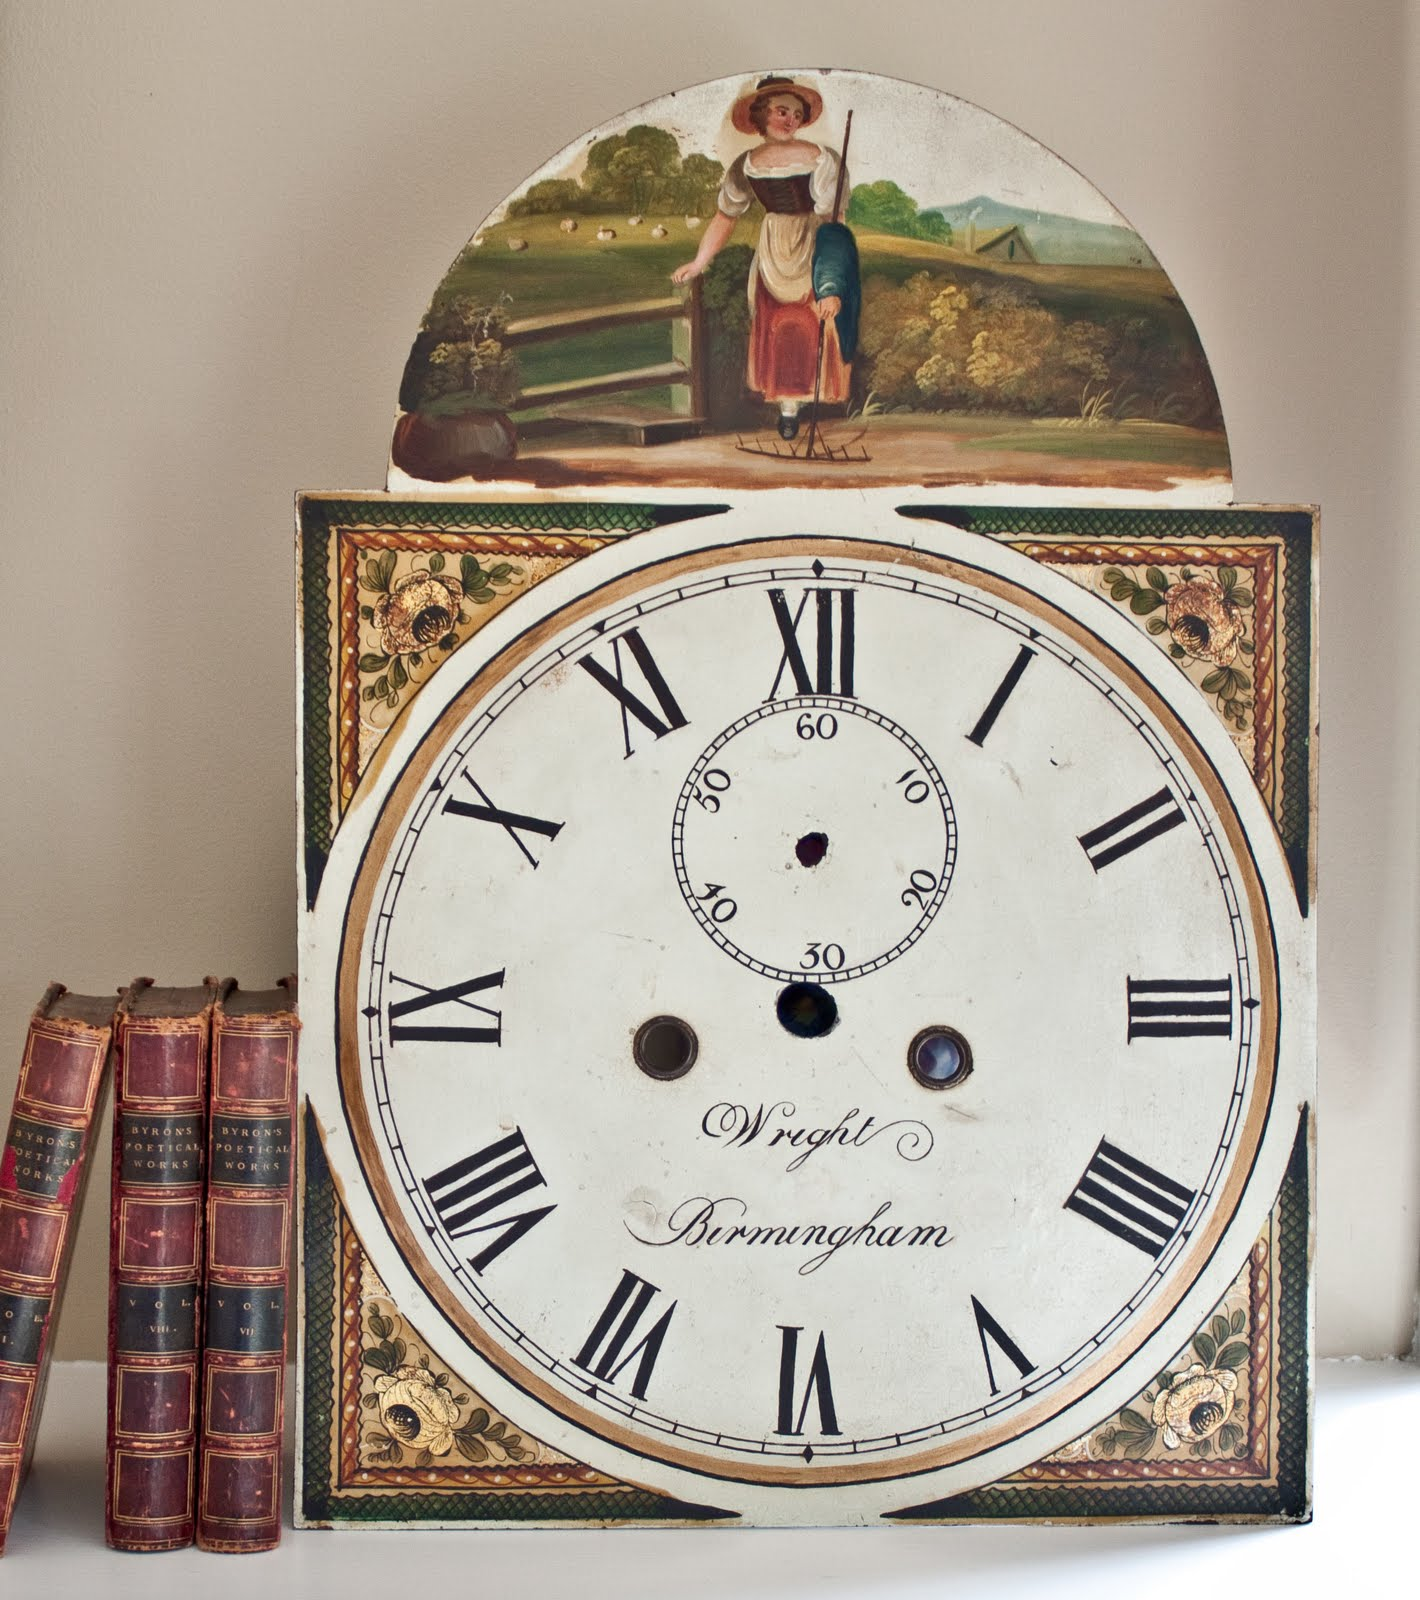 Antique Clock Face Without Hands Was an old clock face.